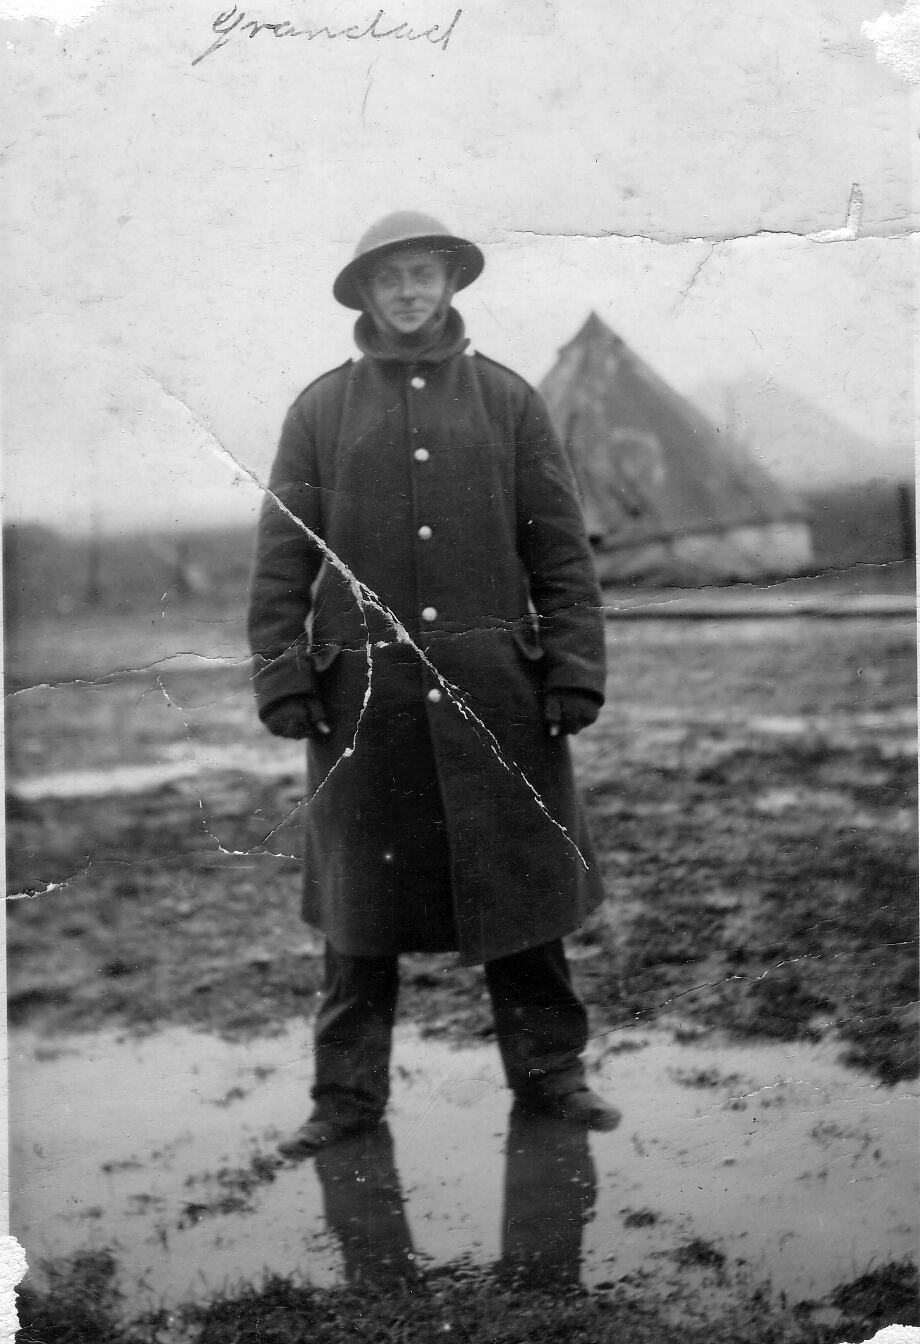 Soldier Standing In Muddy Field 1942